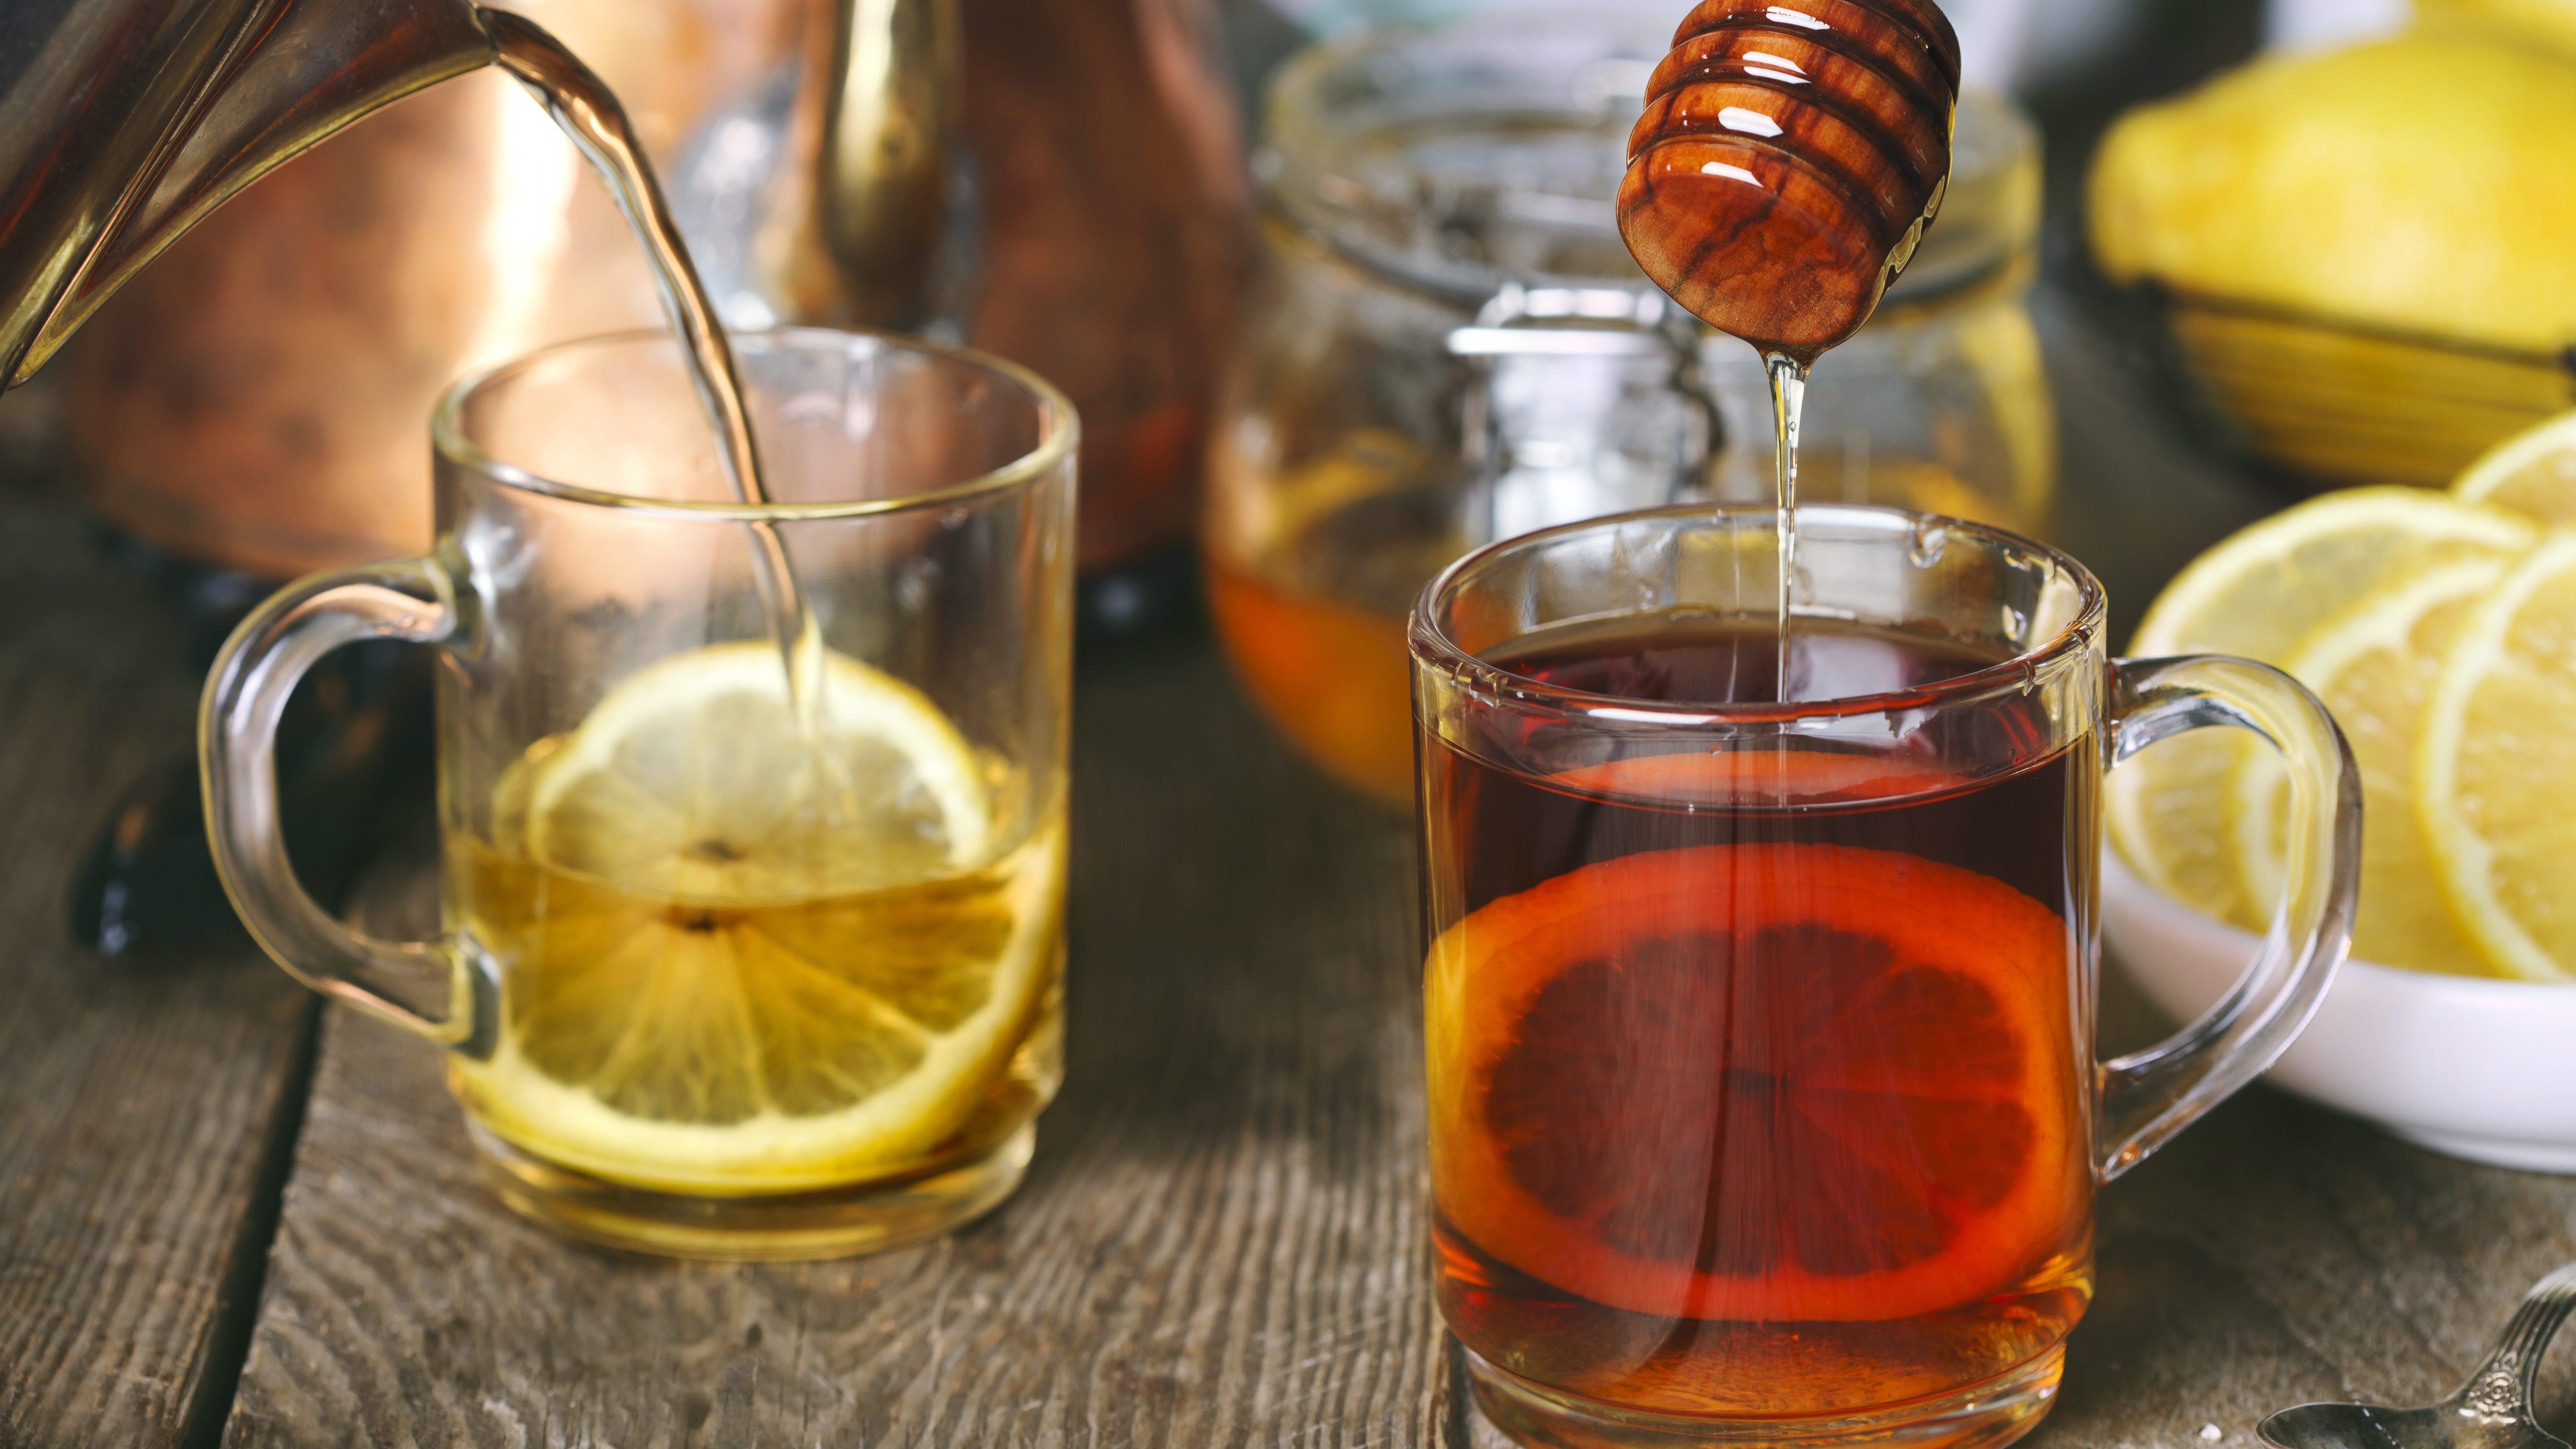 5 Natural Ways to Relieve a Sore Throat - Woman's World